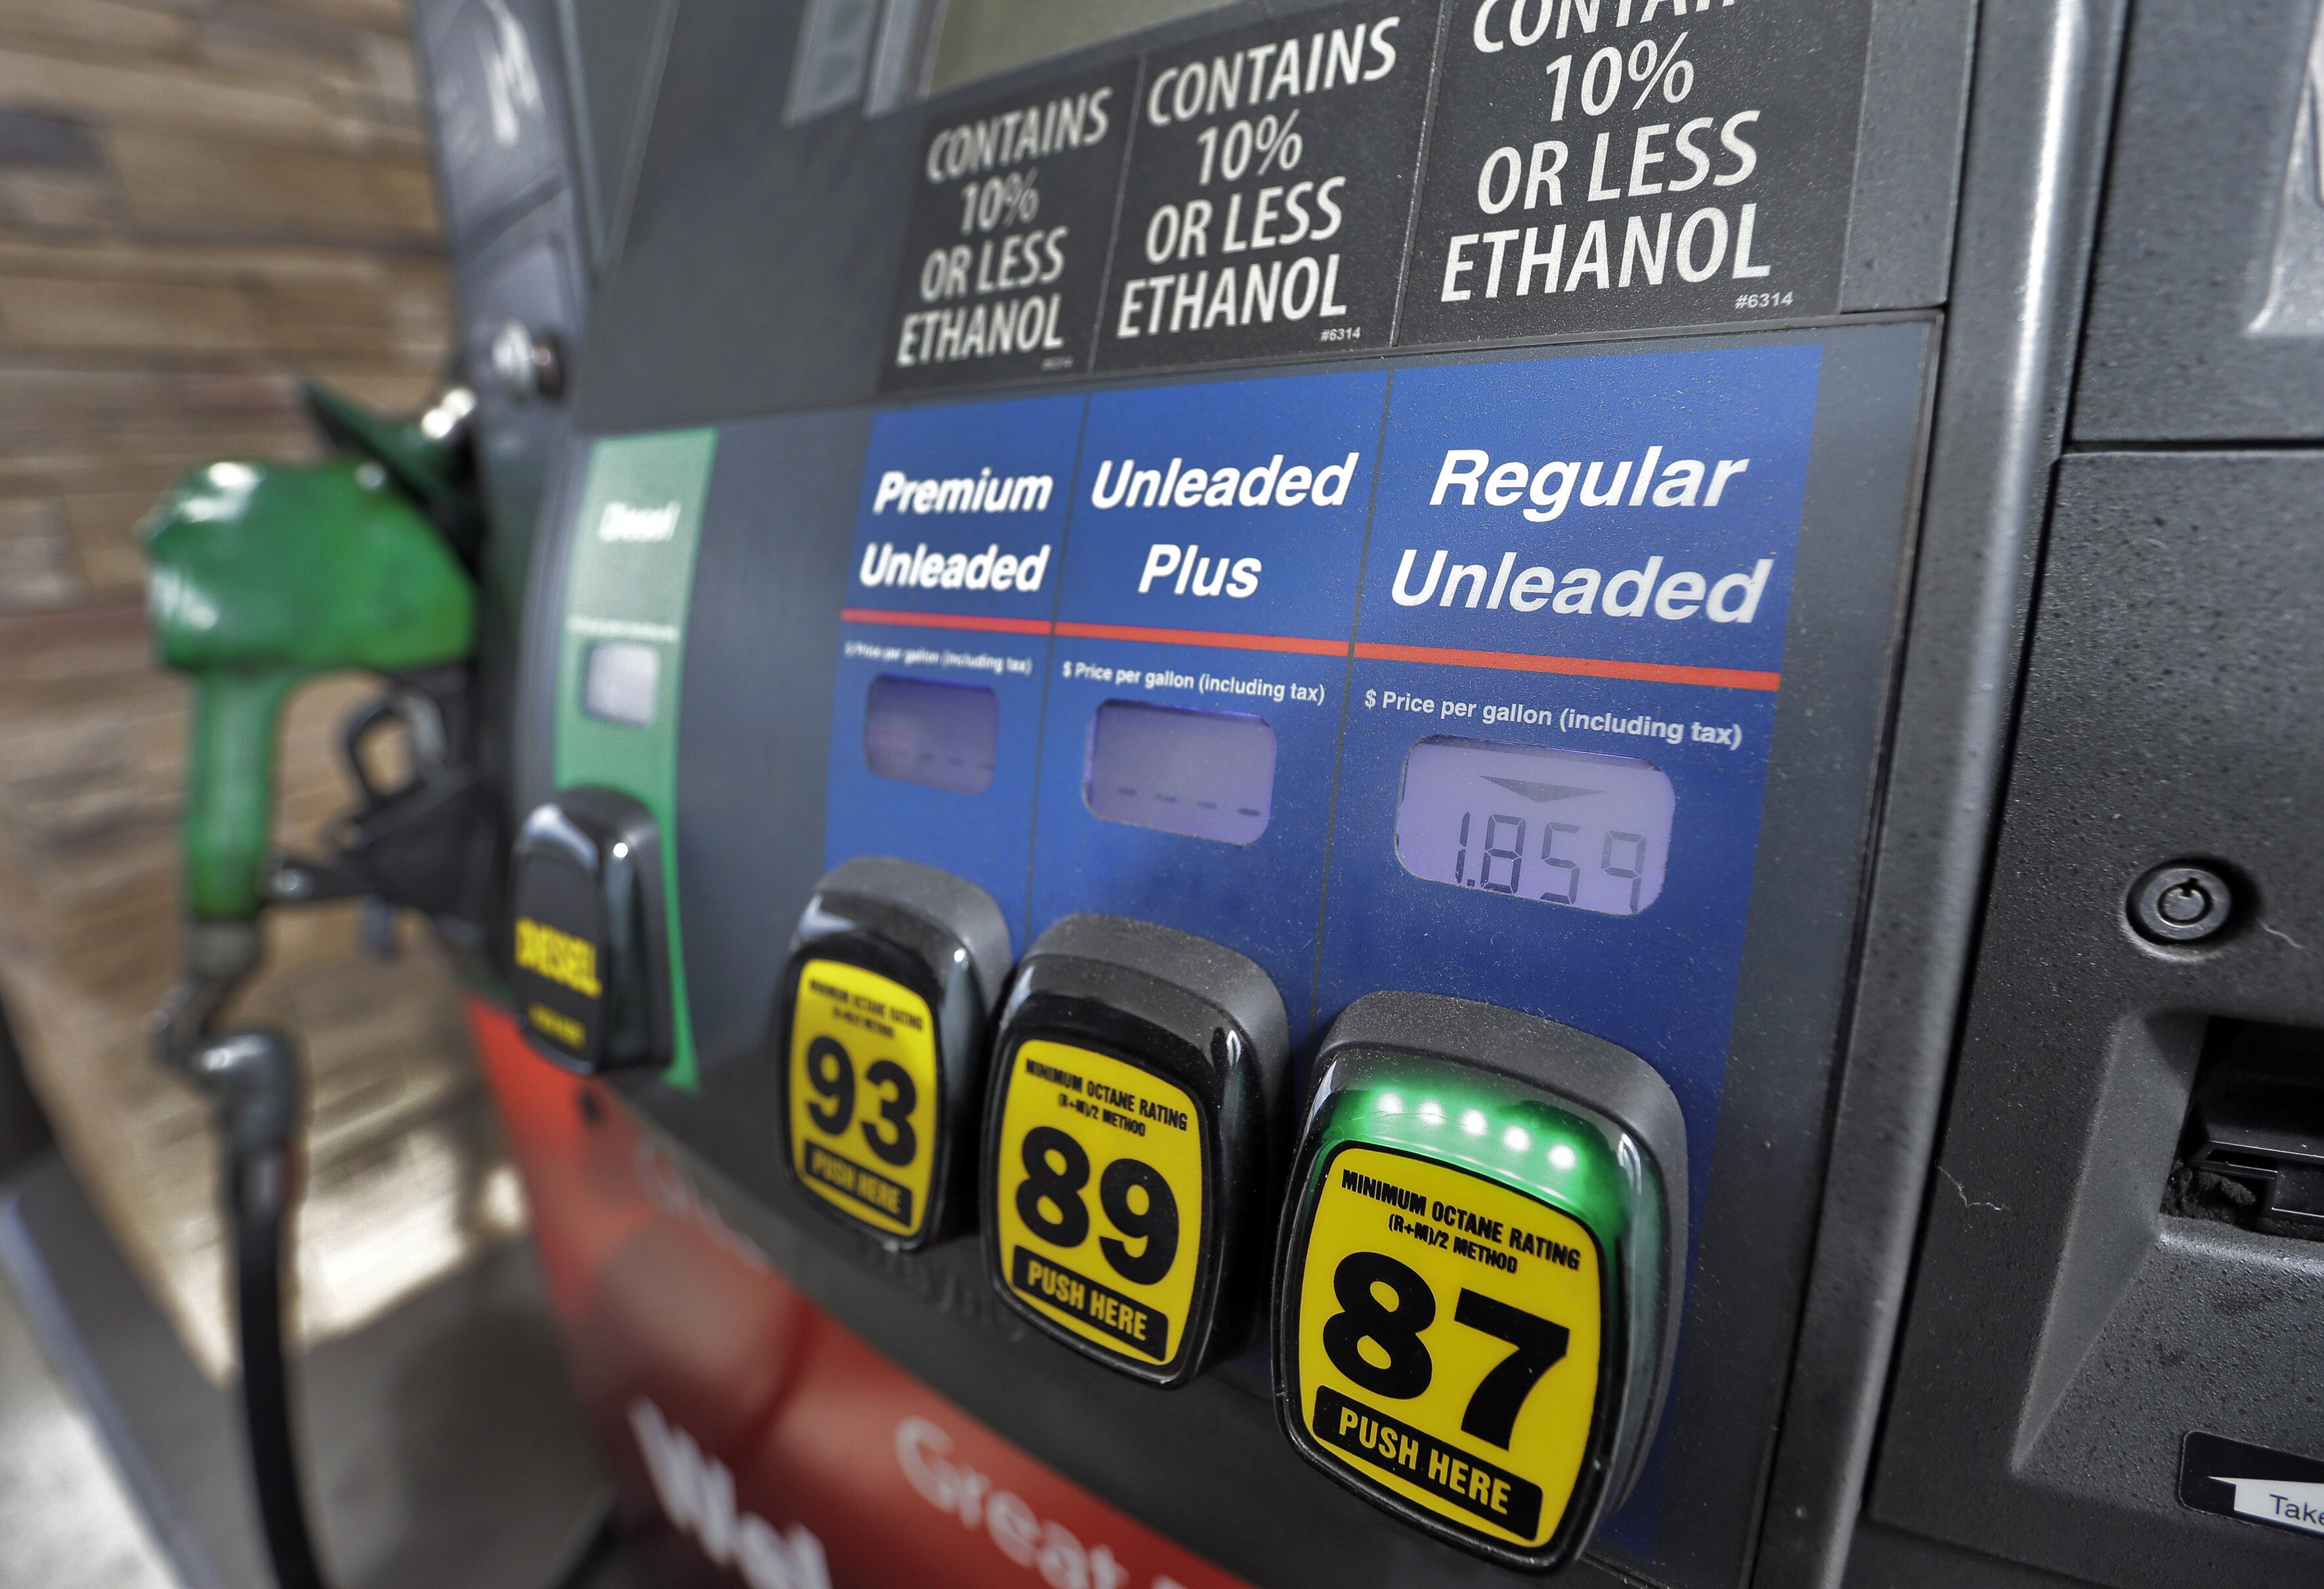 GDP getting 'significant' help from low oil prices, feds say